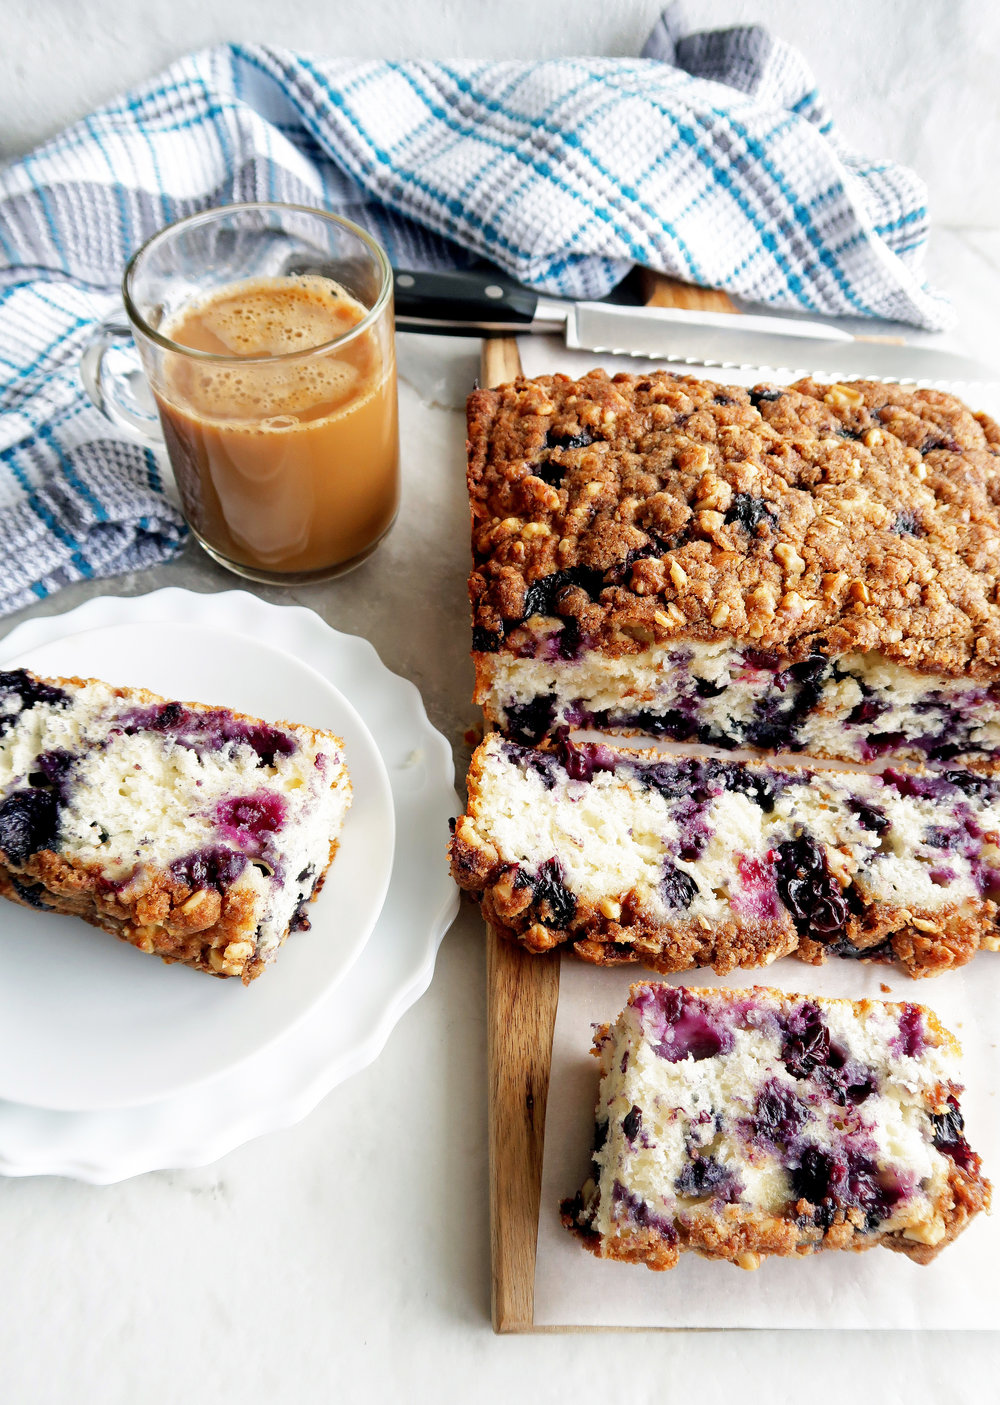 Blueberry coffee cake with brown sugar-walnut crumble on a long wooden board and plate.